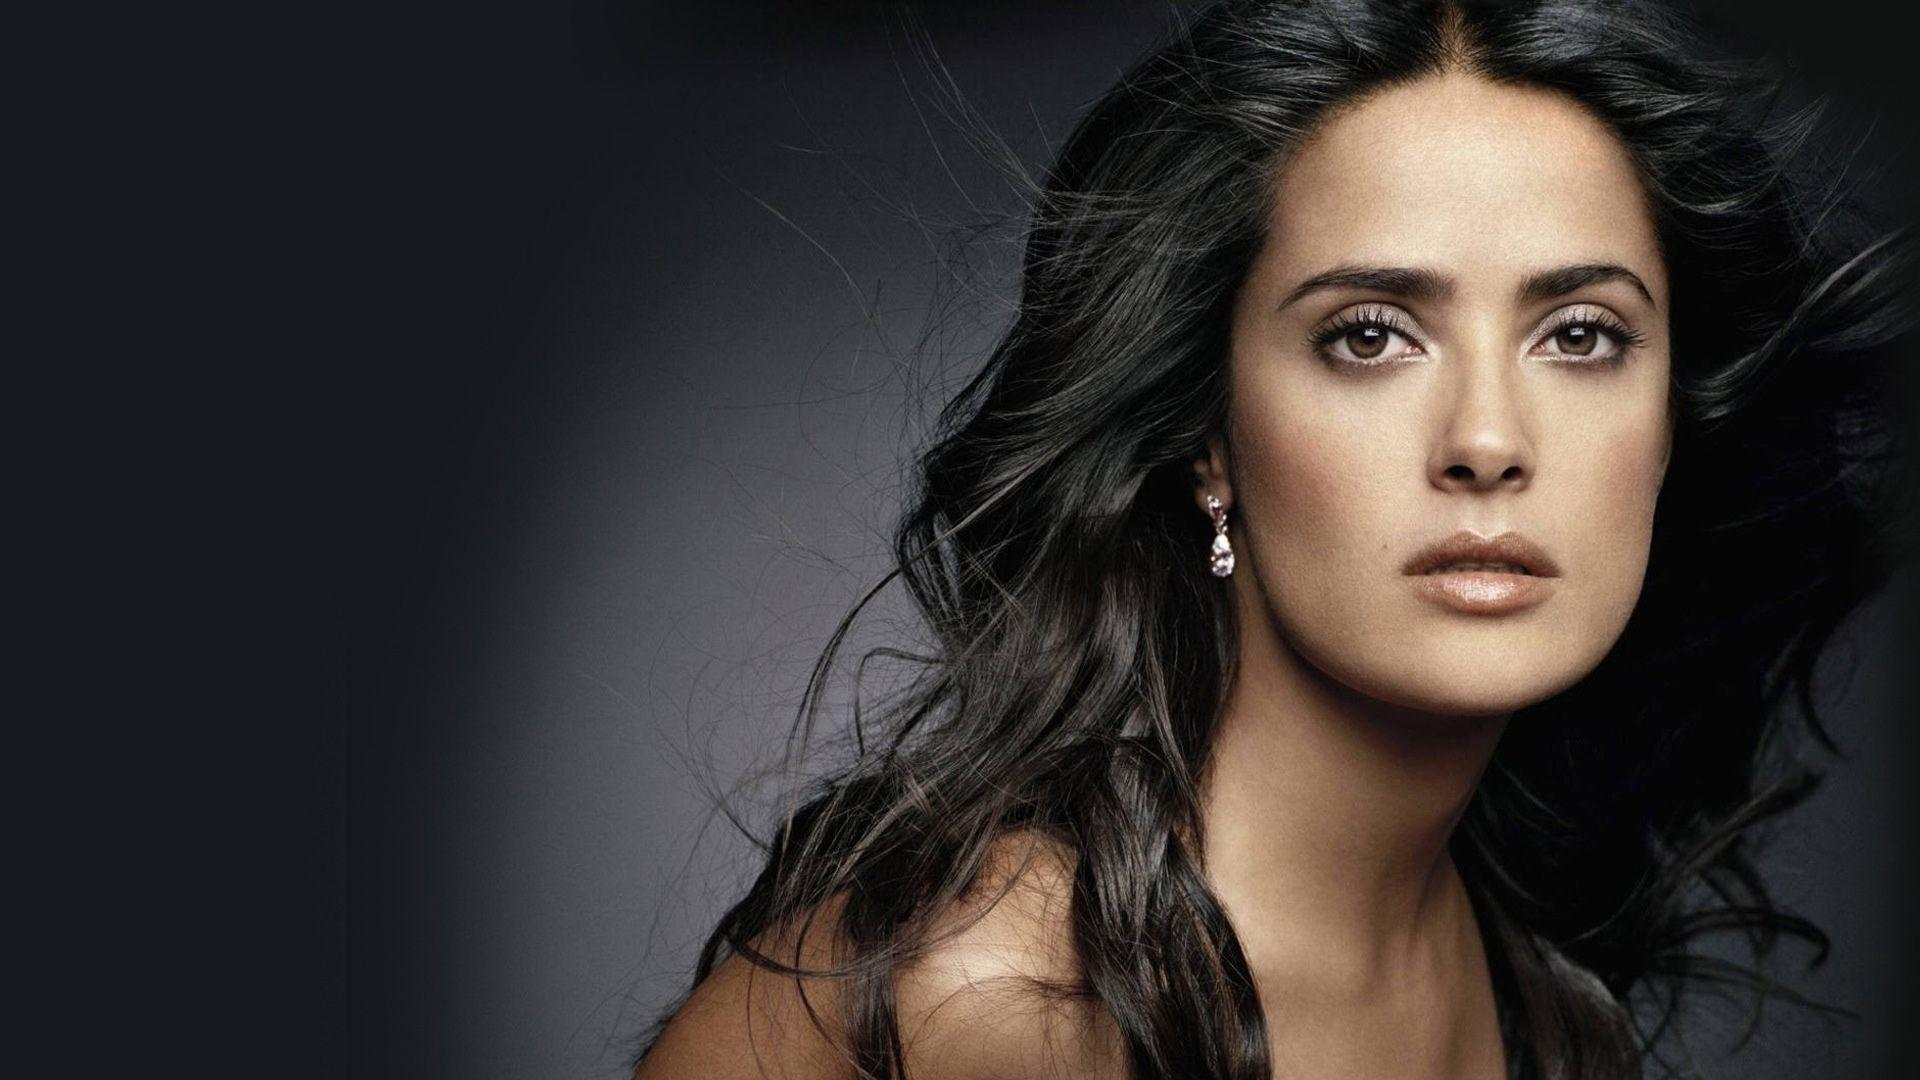 Wallpapers Salma Hayek Wallpaper